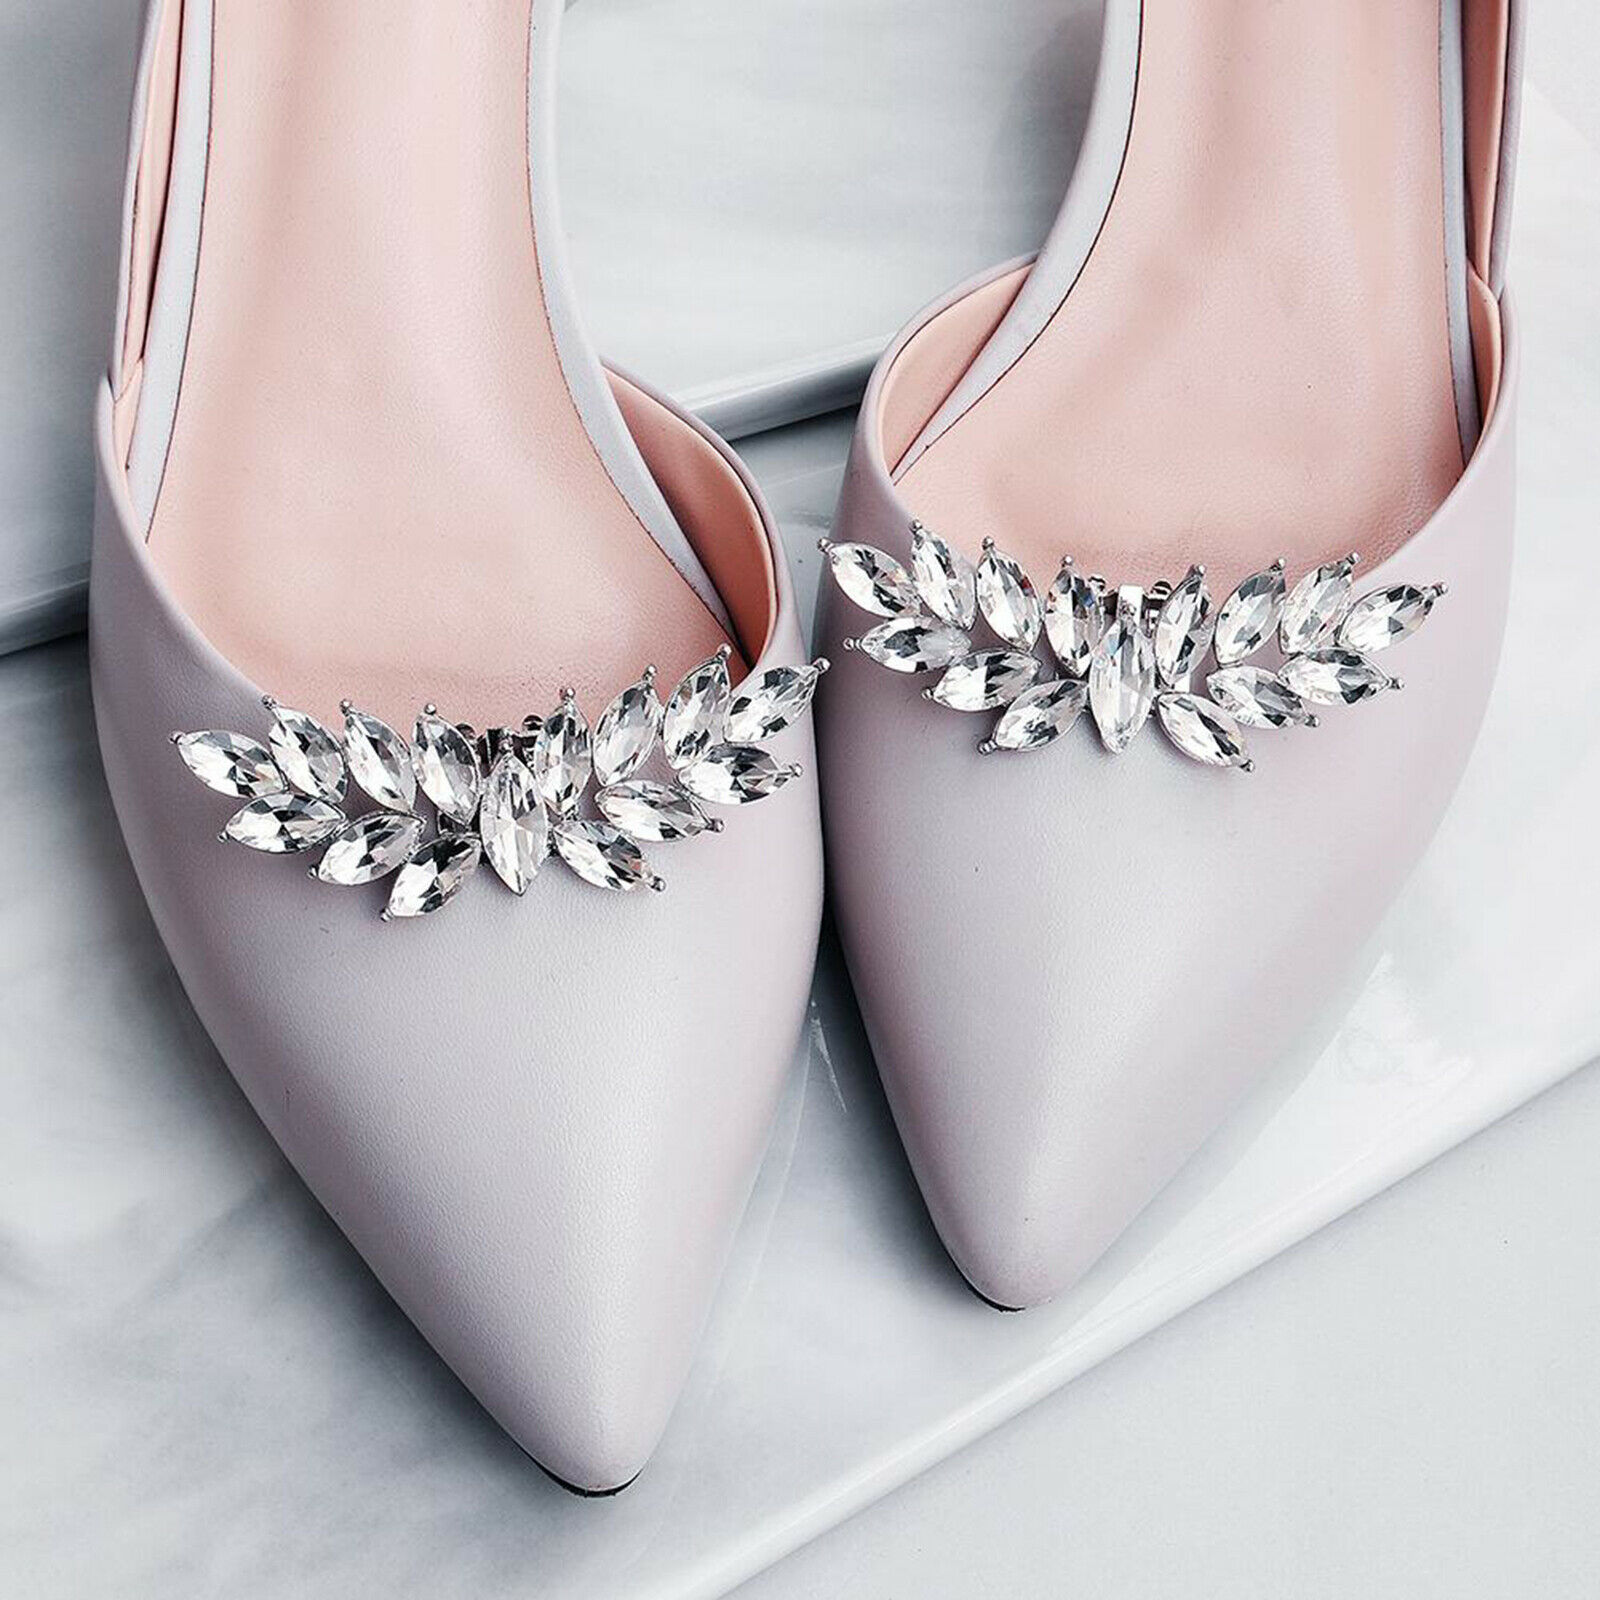 Bridal Shoe Decorations Clips Crystal Rhinestone Shoe Buckle Charms for Wedding